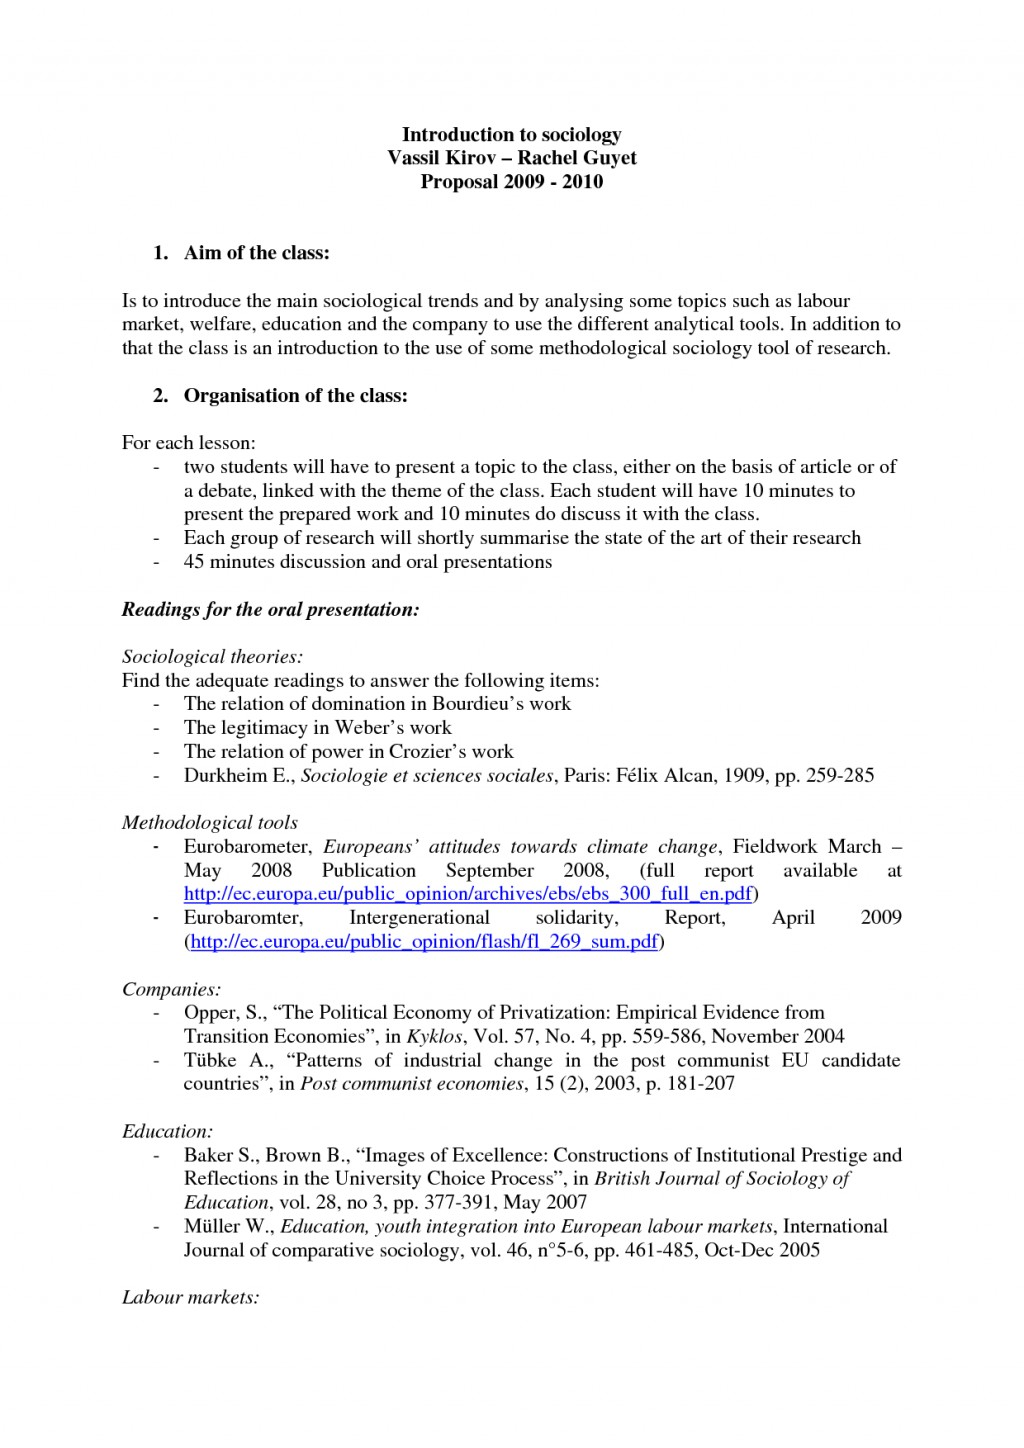 008 Examples Of Research Proposals Sociology Rare Proposal Papers Large